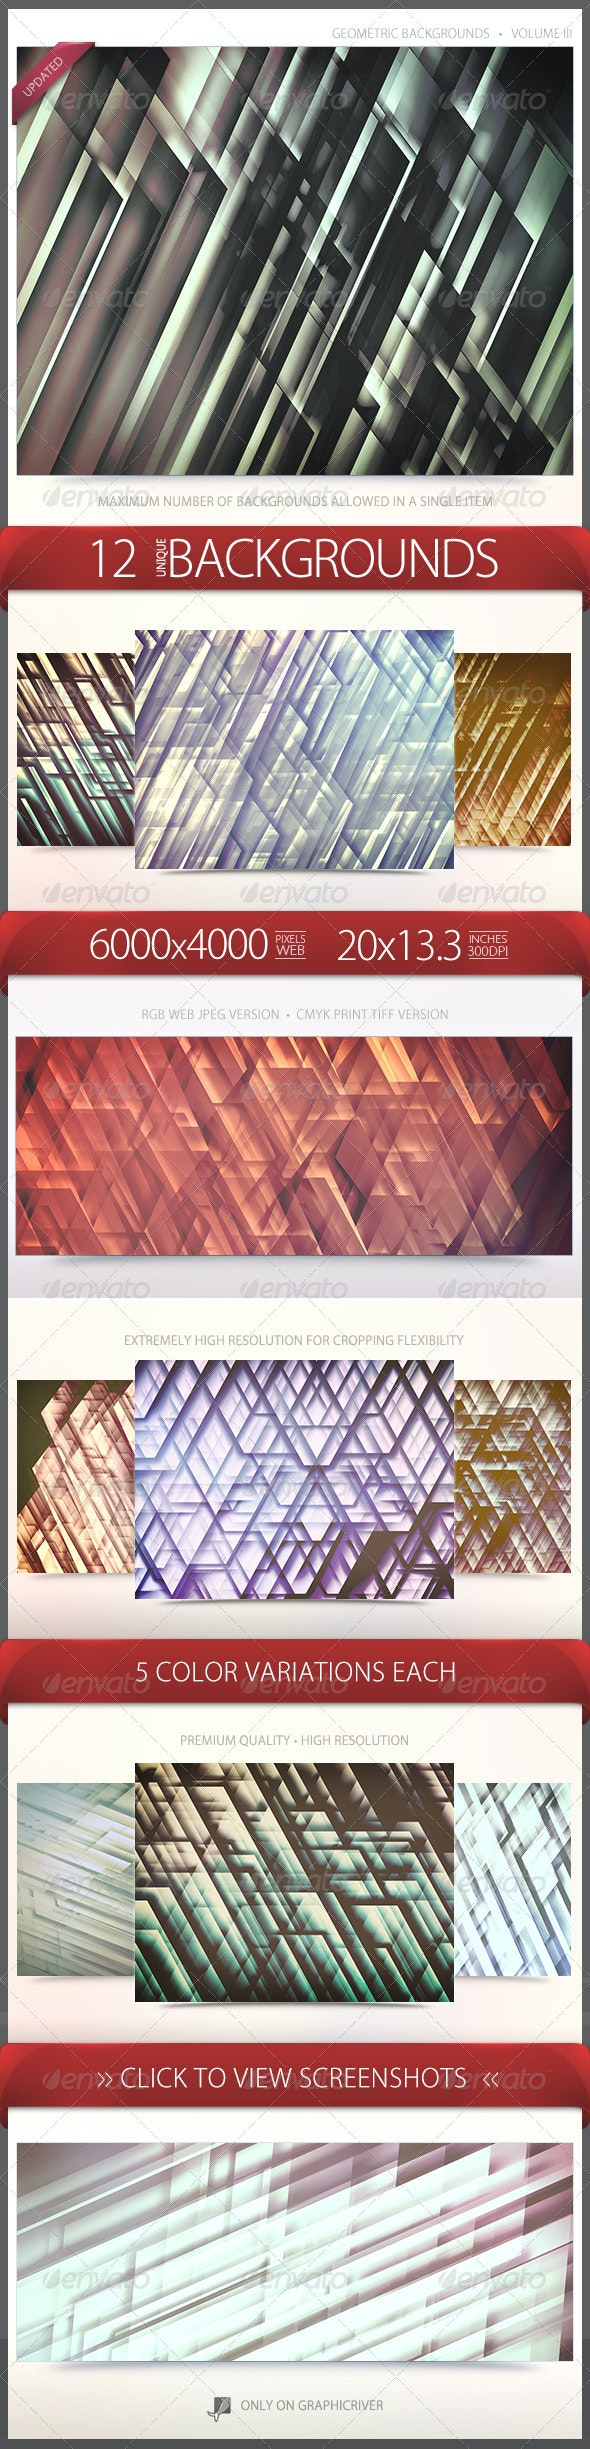 Geometric Backgrounds Volume 3 - Abstract Backgrounds